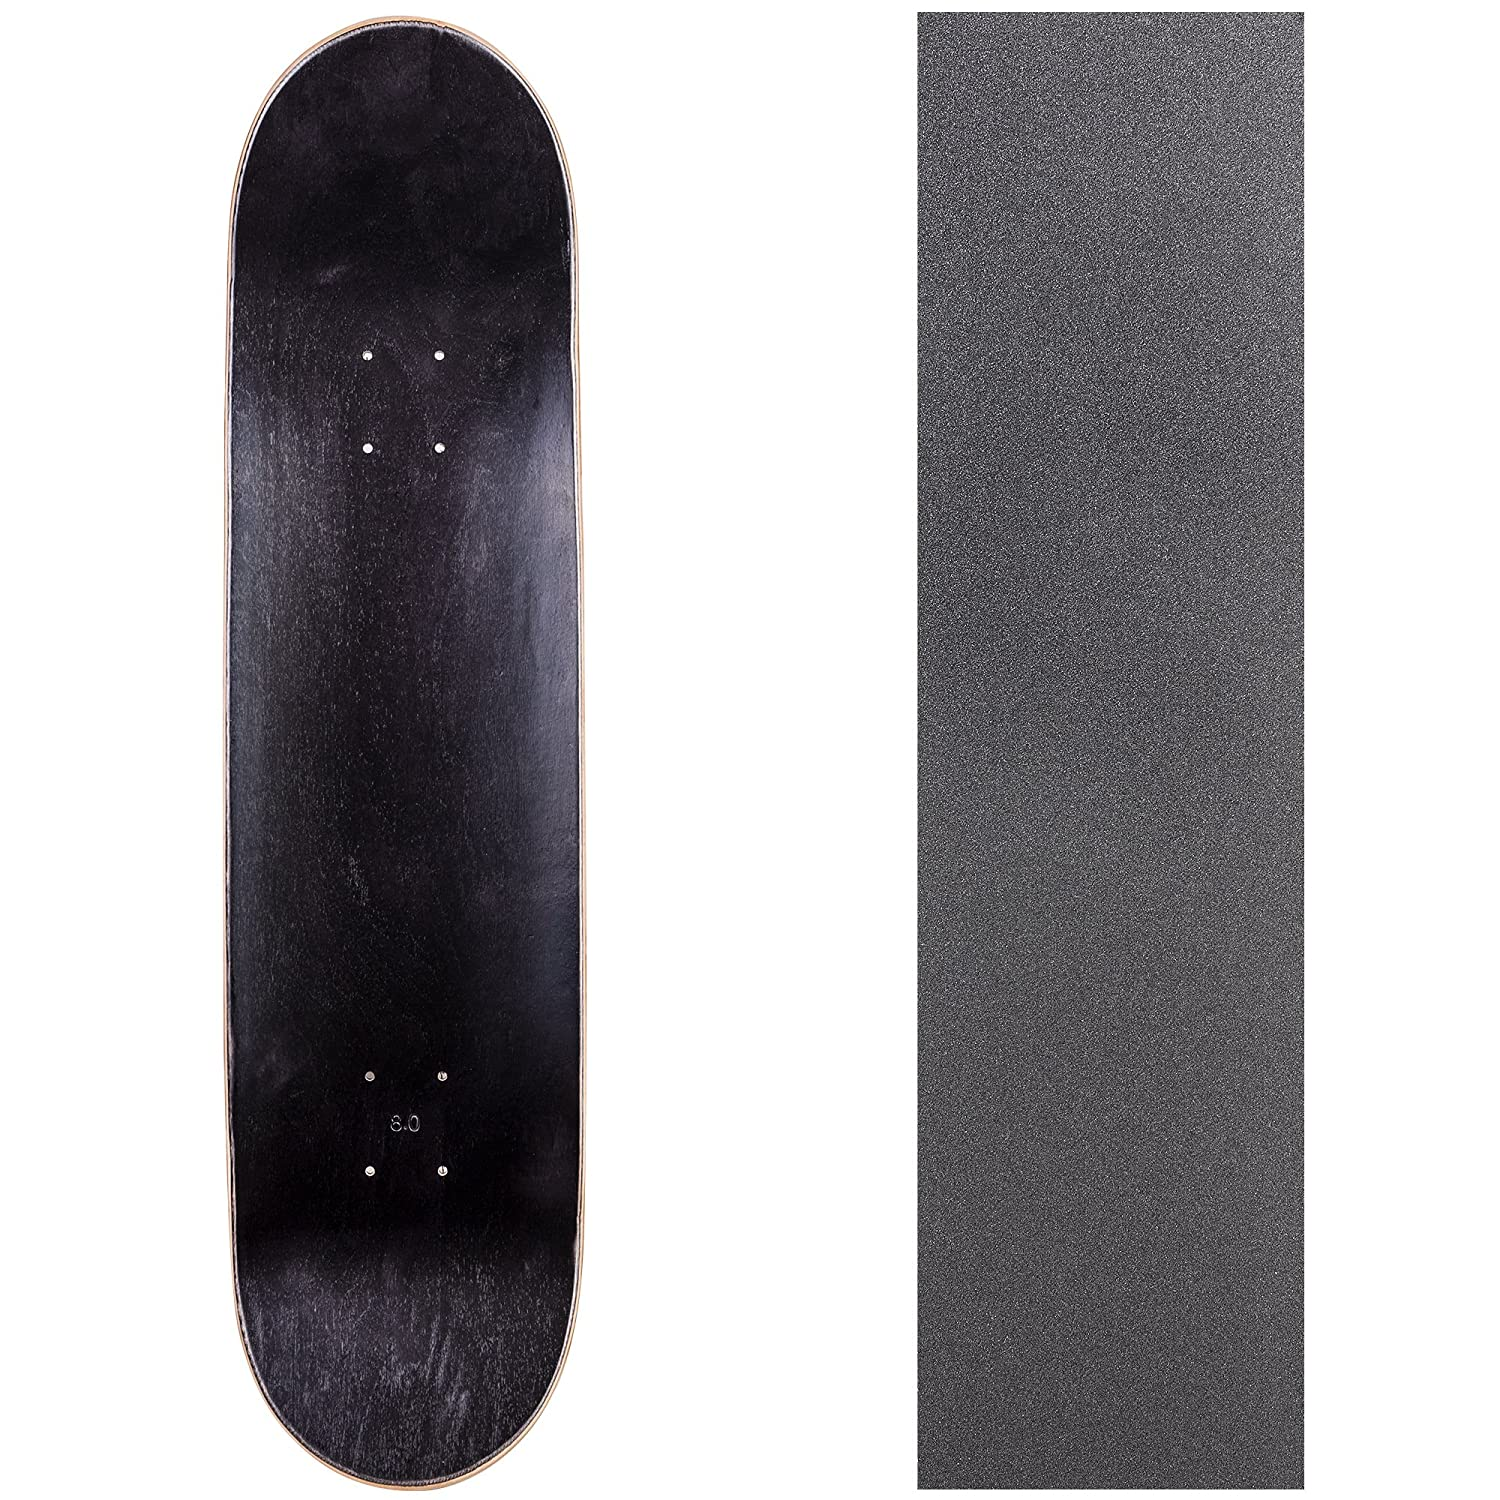 Cal 7 Blank Skateboard Deck with Grip Tape | 7 75, 8 0, 8 25